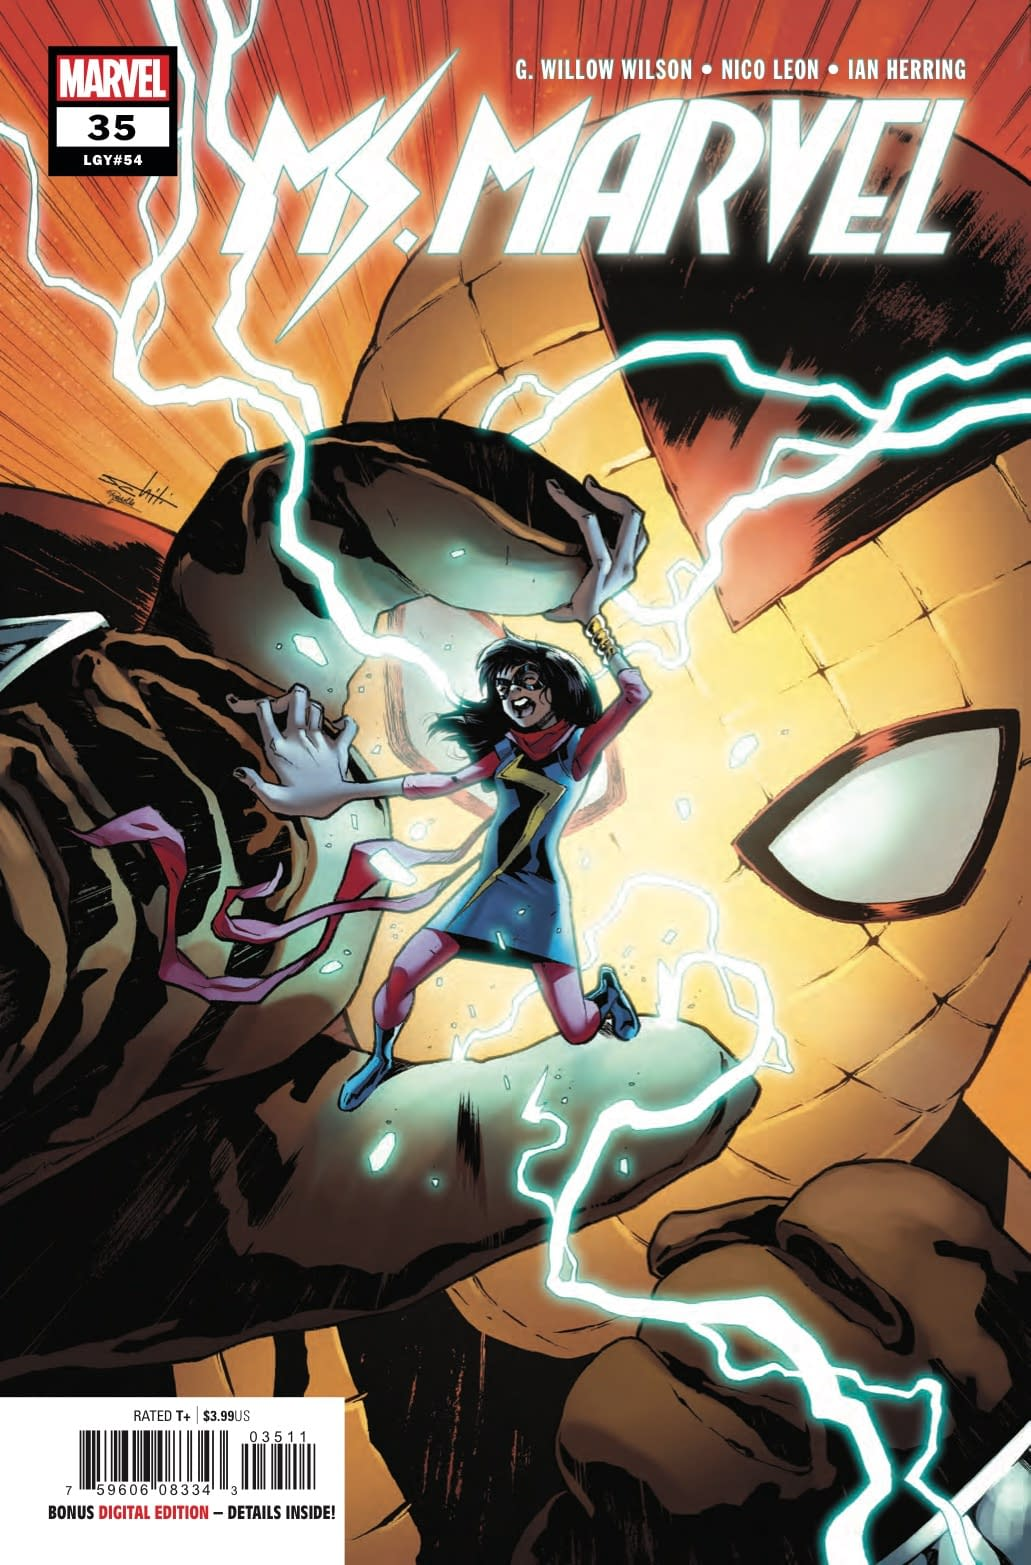 Kamala Khan's Ebiggening Powers Explained in Preview of Ms. Marvel #35